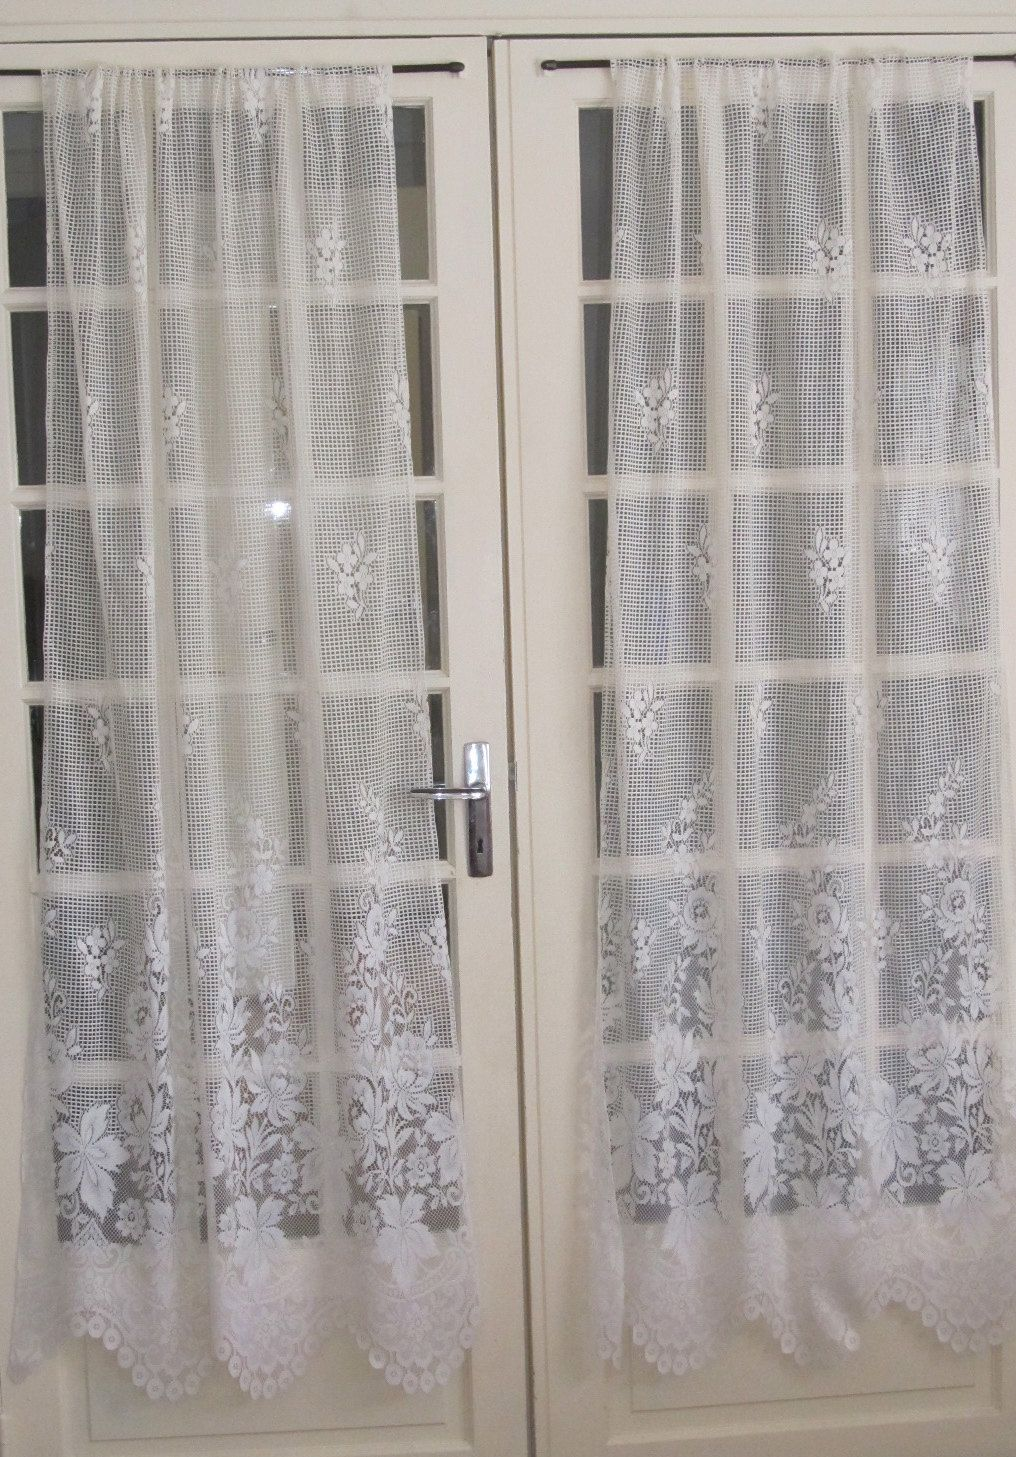 Ivory French Door Lace Curtains Ecru Lace By Hatchedinfrance 55 00 French Door Curtains Curtains French Doors